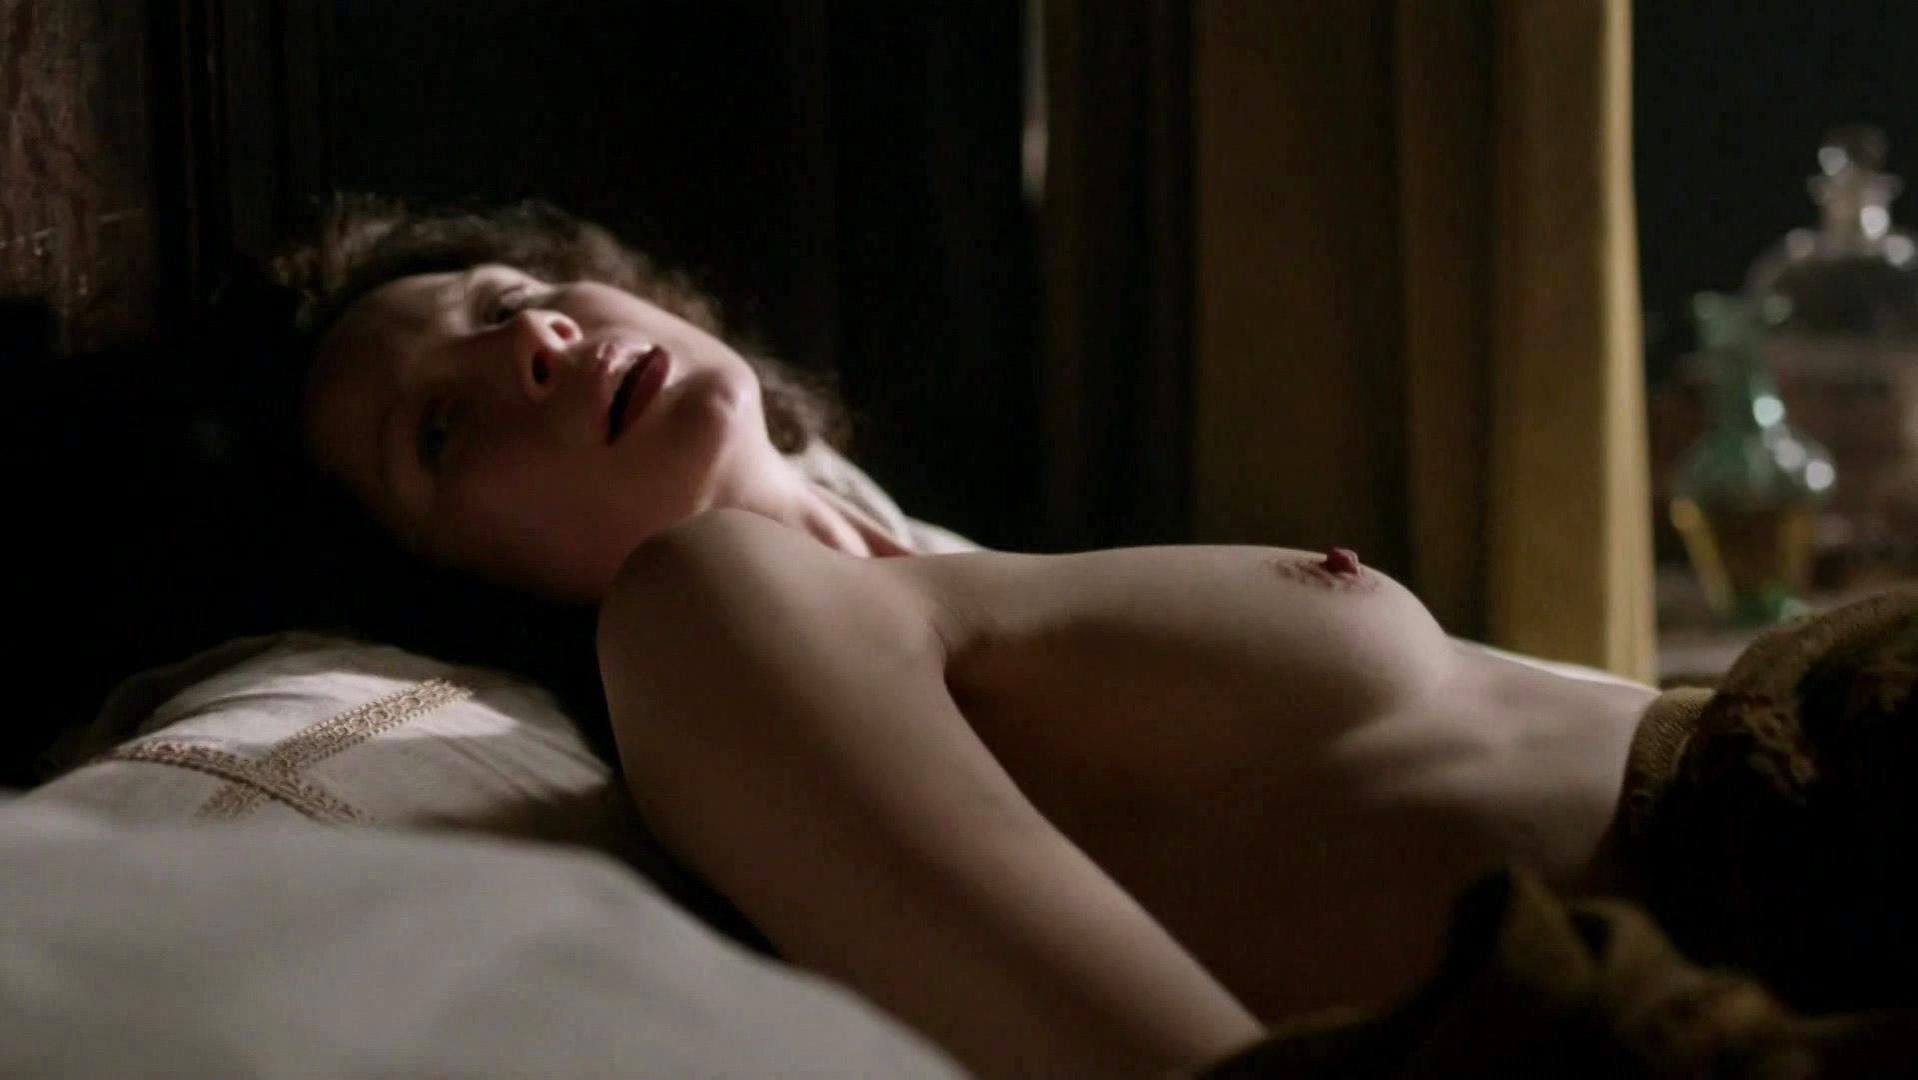 Caitriona balfe and lotte verbeek nude outlander s01e10 8